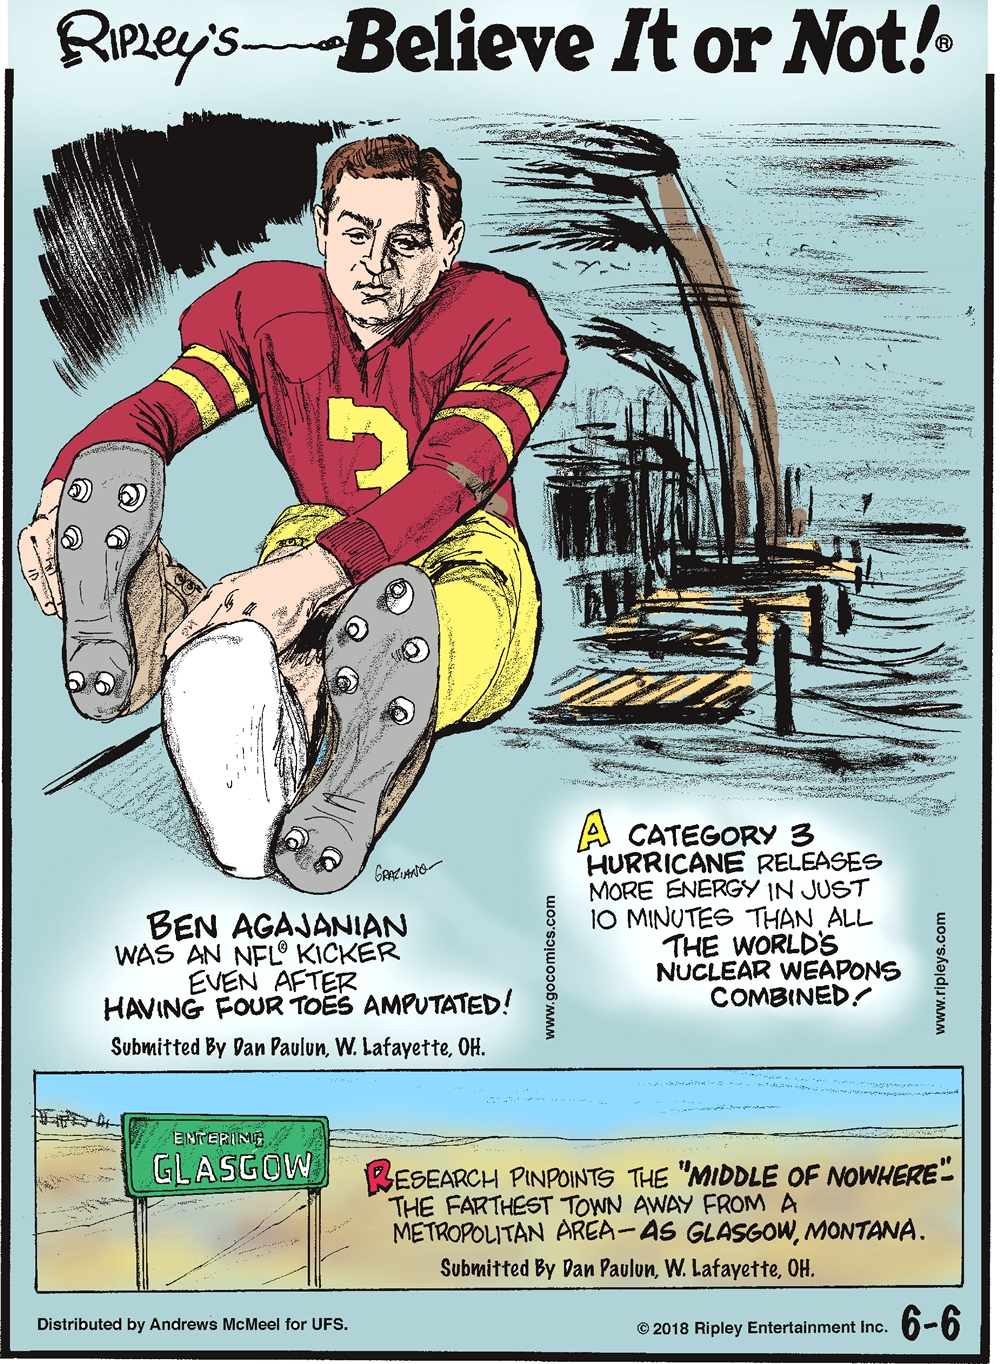 "Ben Agajanian was an NFL kicker even after having four toes amputated! Submitted by Dan Paulun, W. Lafayette, OH.-------------------- A category 3 hurricane releases more energy in just 10 minutes than all the world's nuclear weapons combined!-------------------- Research pinpoints the ""middle of nowhere"" - the farthest town away from a metropolitan area - as Glasgow, Montana. Submitted by Dan Paulun, W. Lafayette, OH."